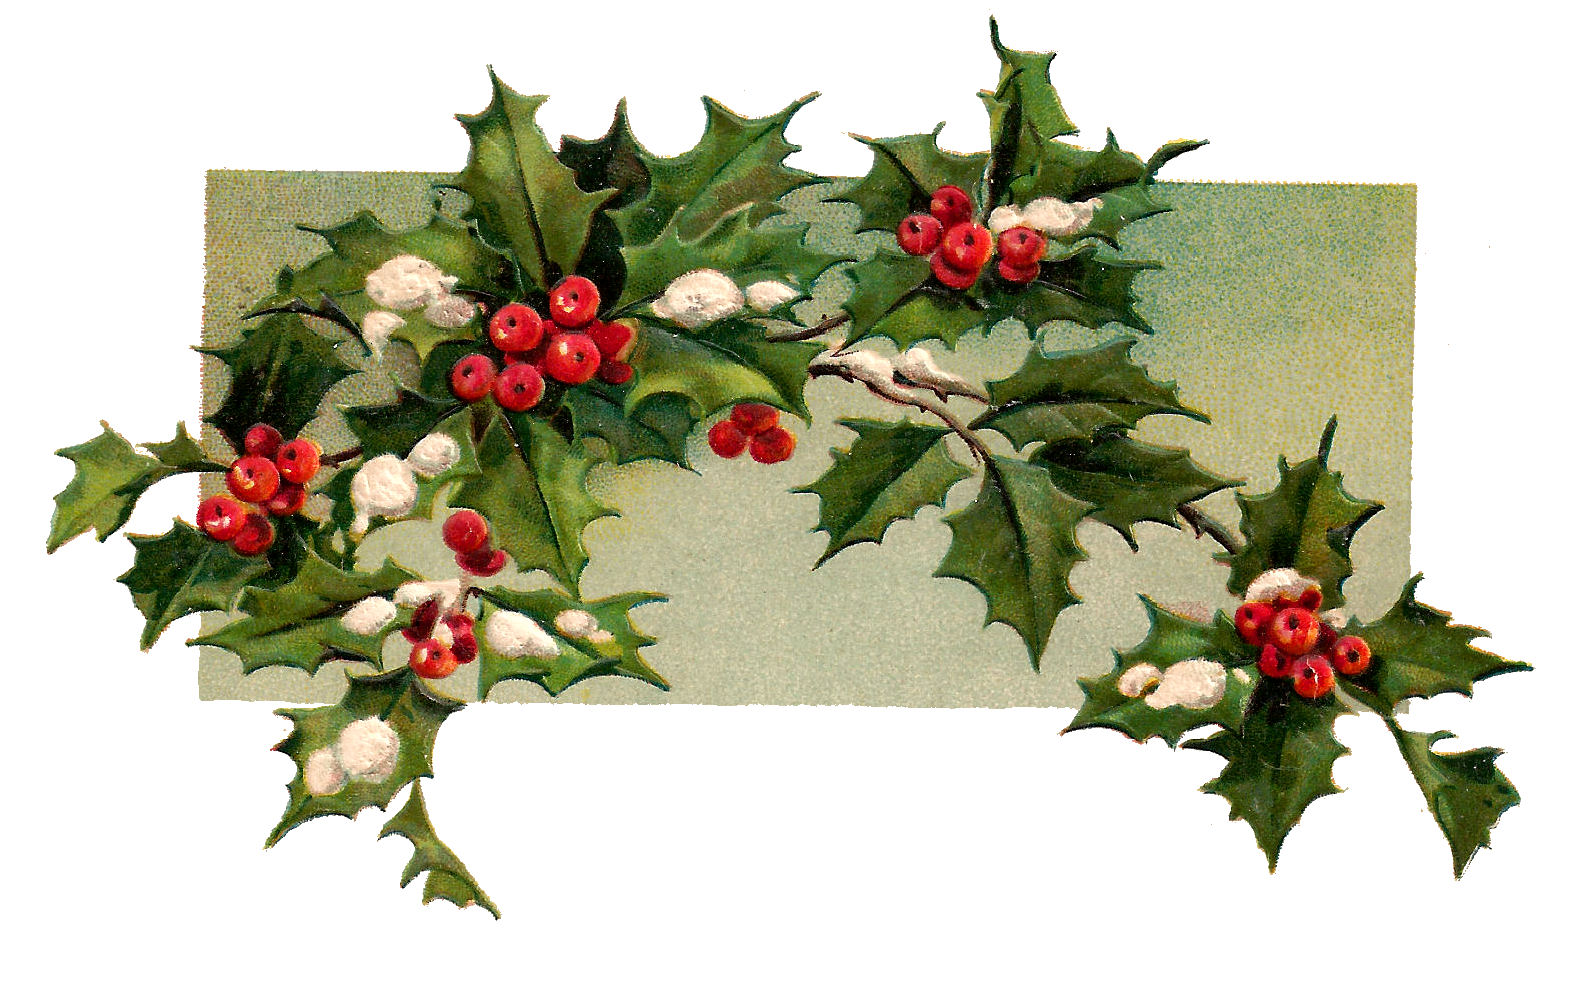 Free clipart branches with snow on them holly clip art transparent stock The Graphics Monarch: Free Digital Christmas Holly Design Element ... clip art transparent stock